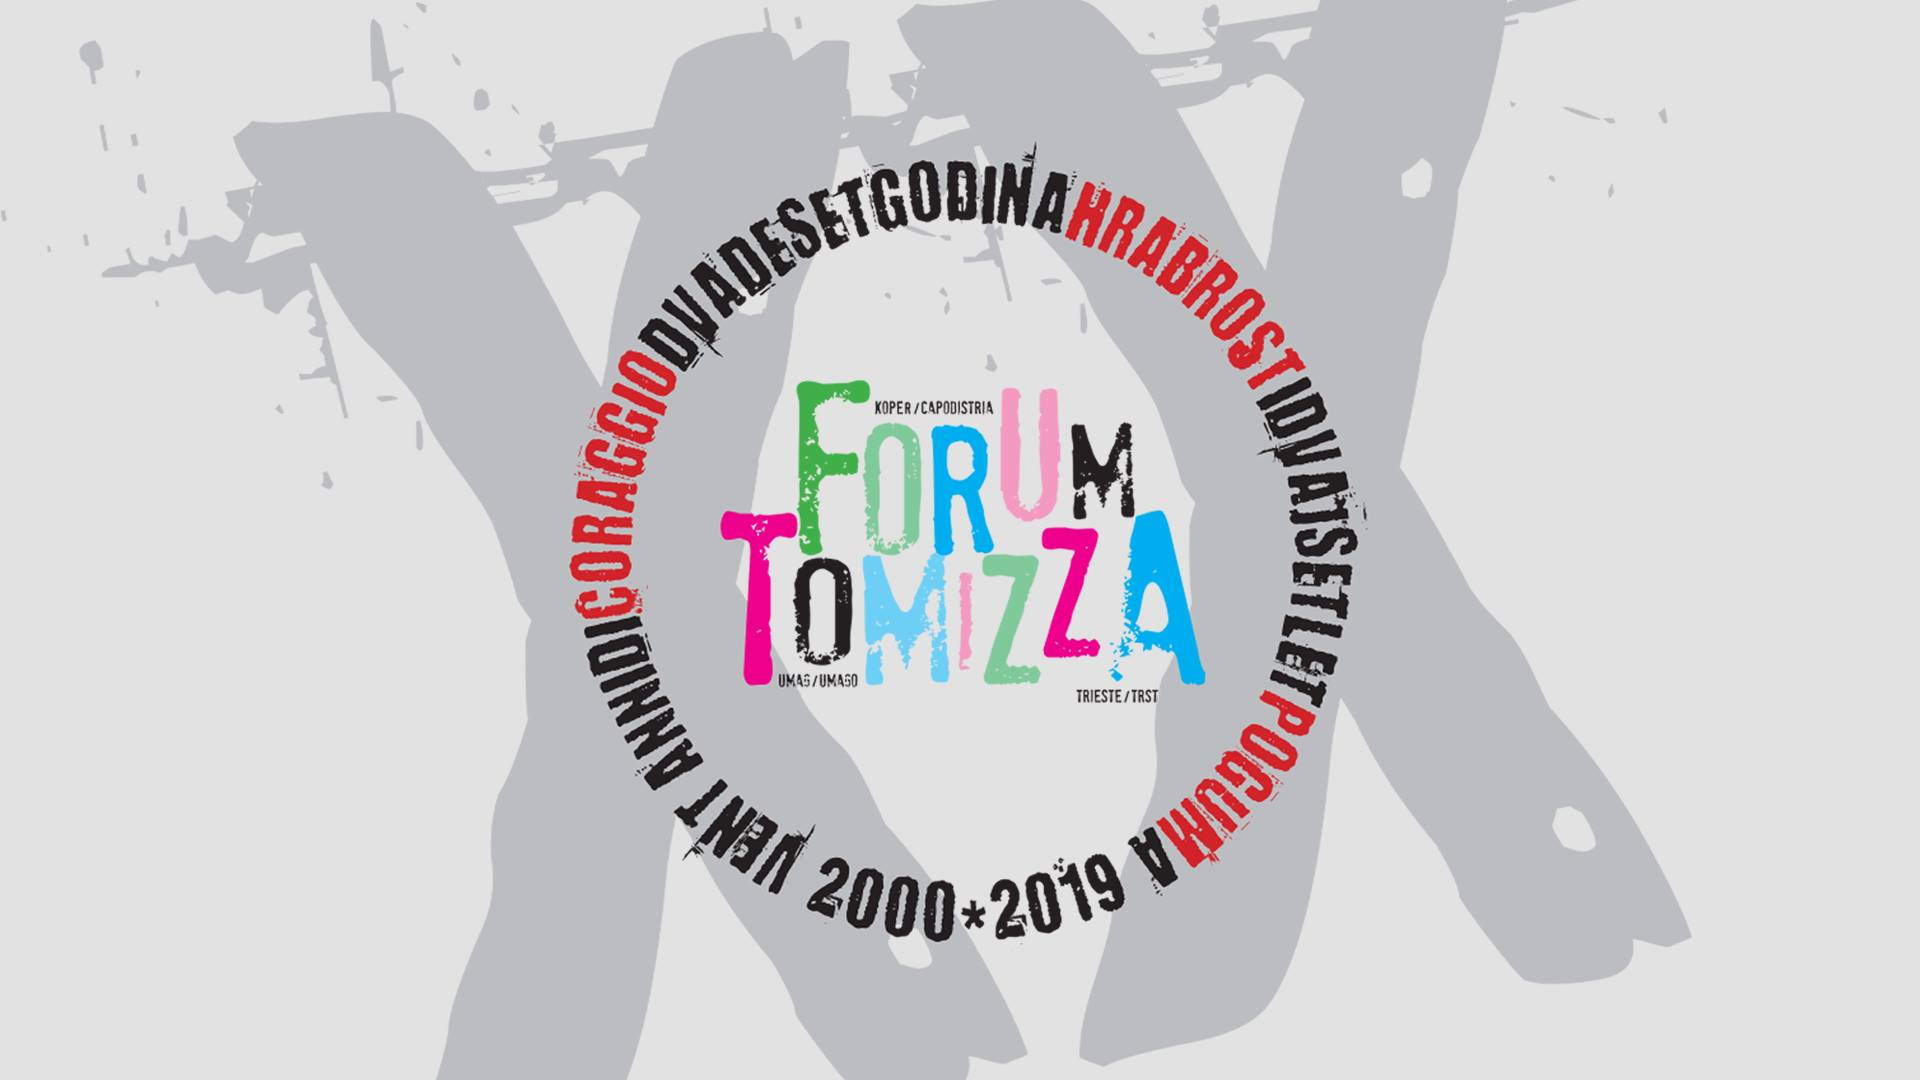 Forum Tomizza 2019: program